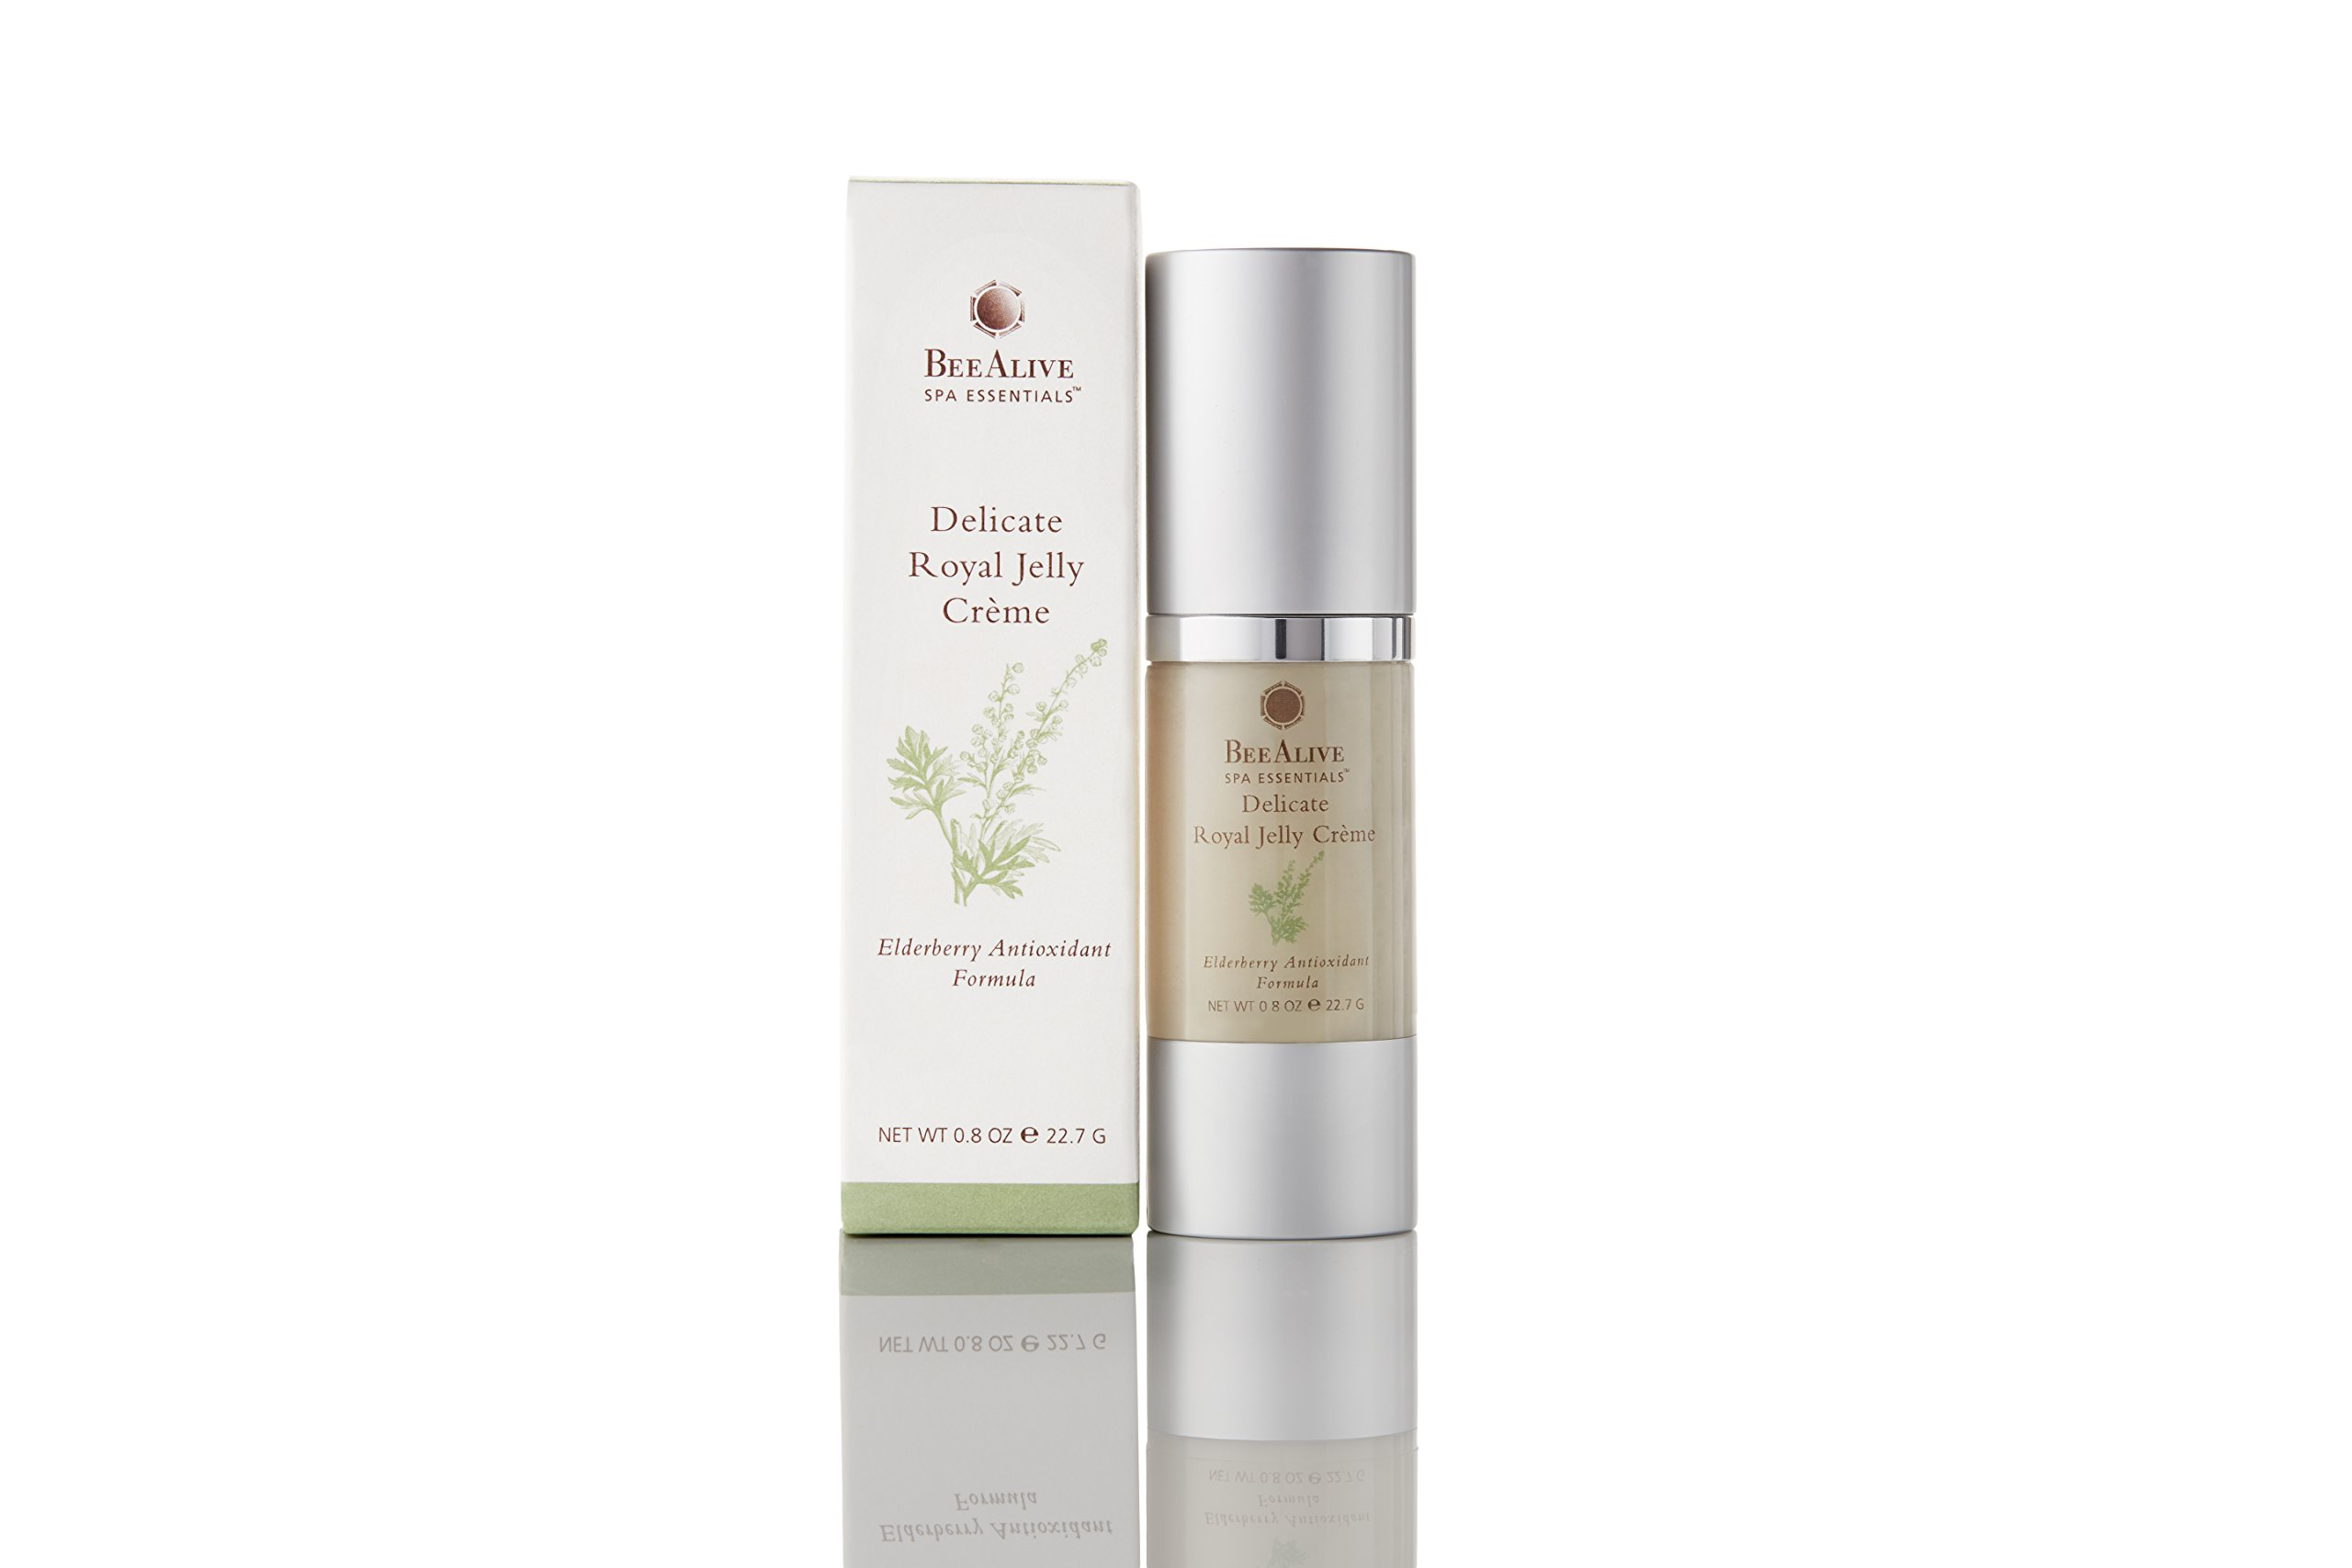 BeeAlive Spa Essentials Delicate Royal Jelly Creme (All-Natural)